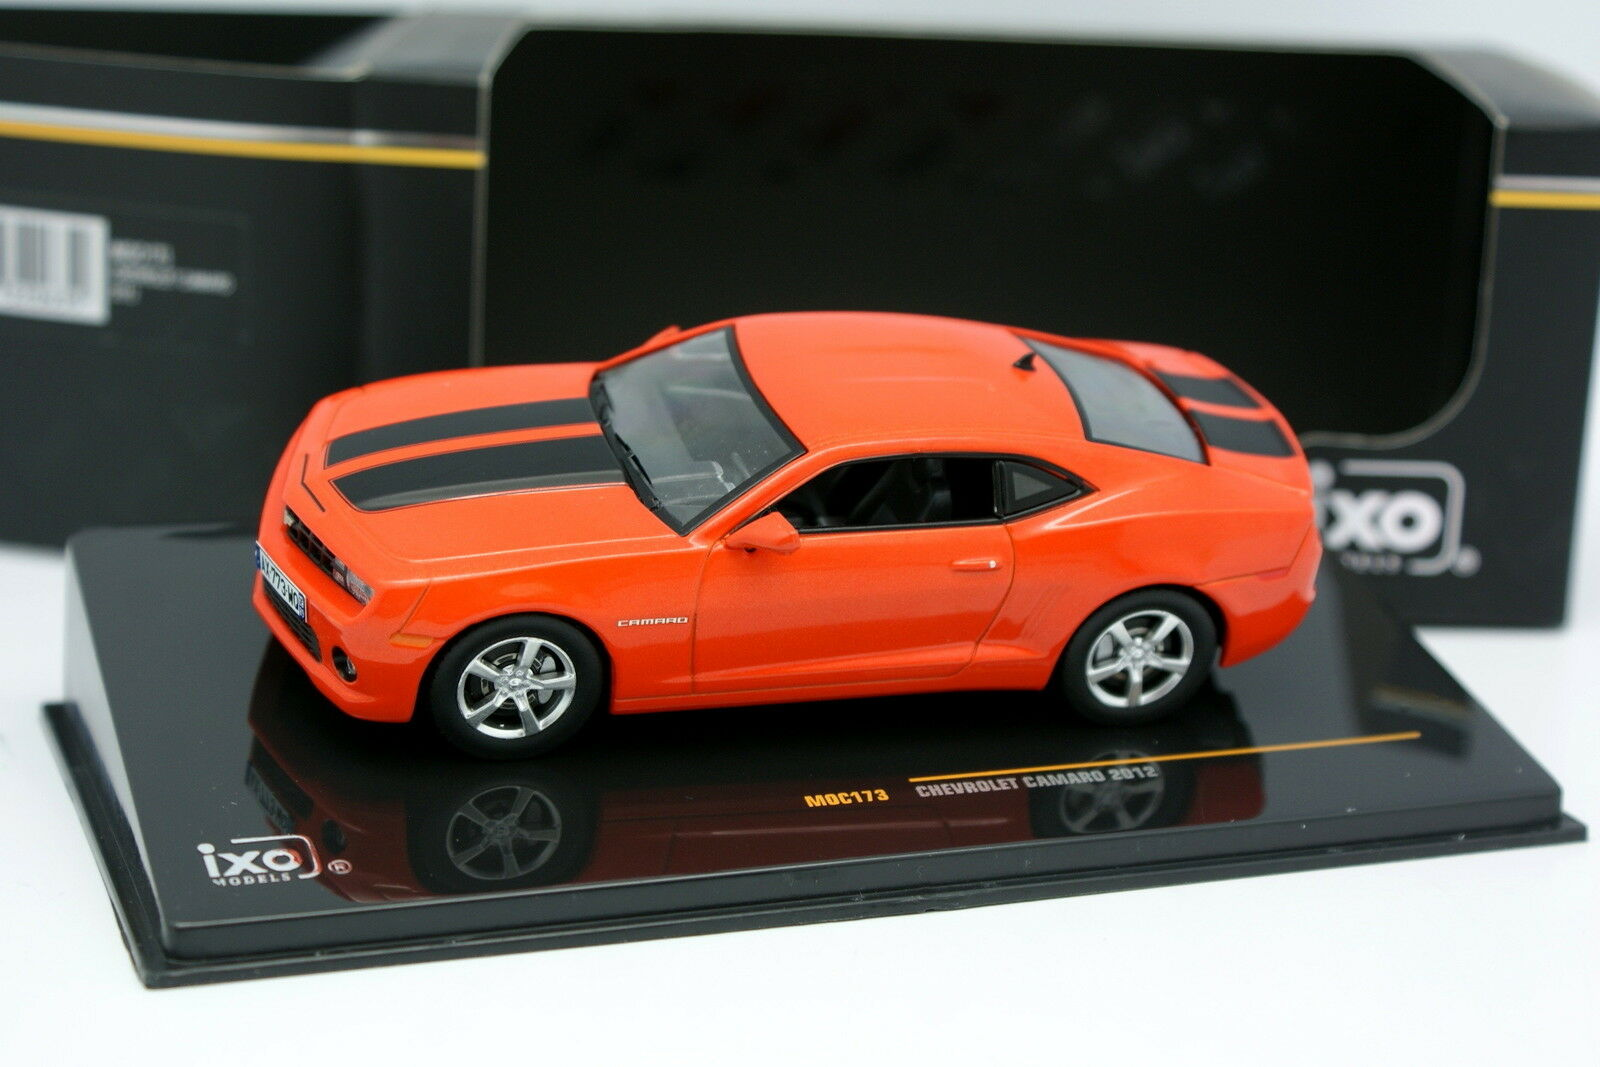 IXO 1 43 - 2012 Chevrolet Camaro orange